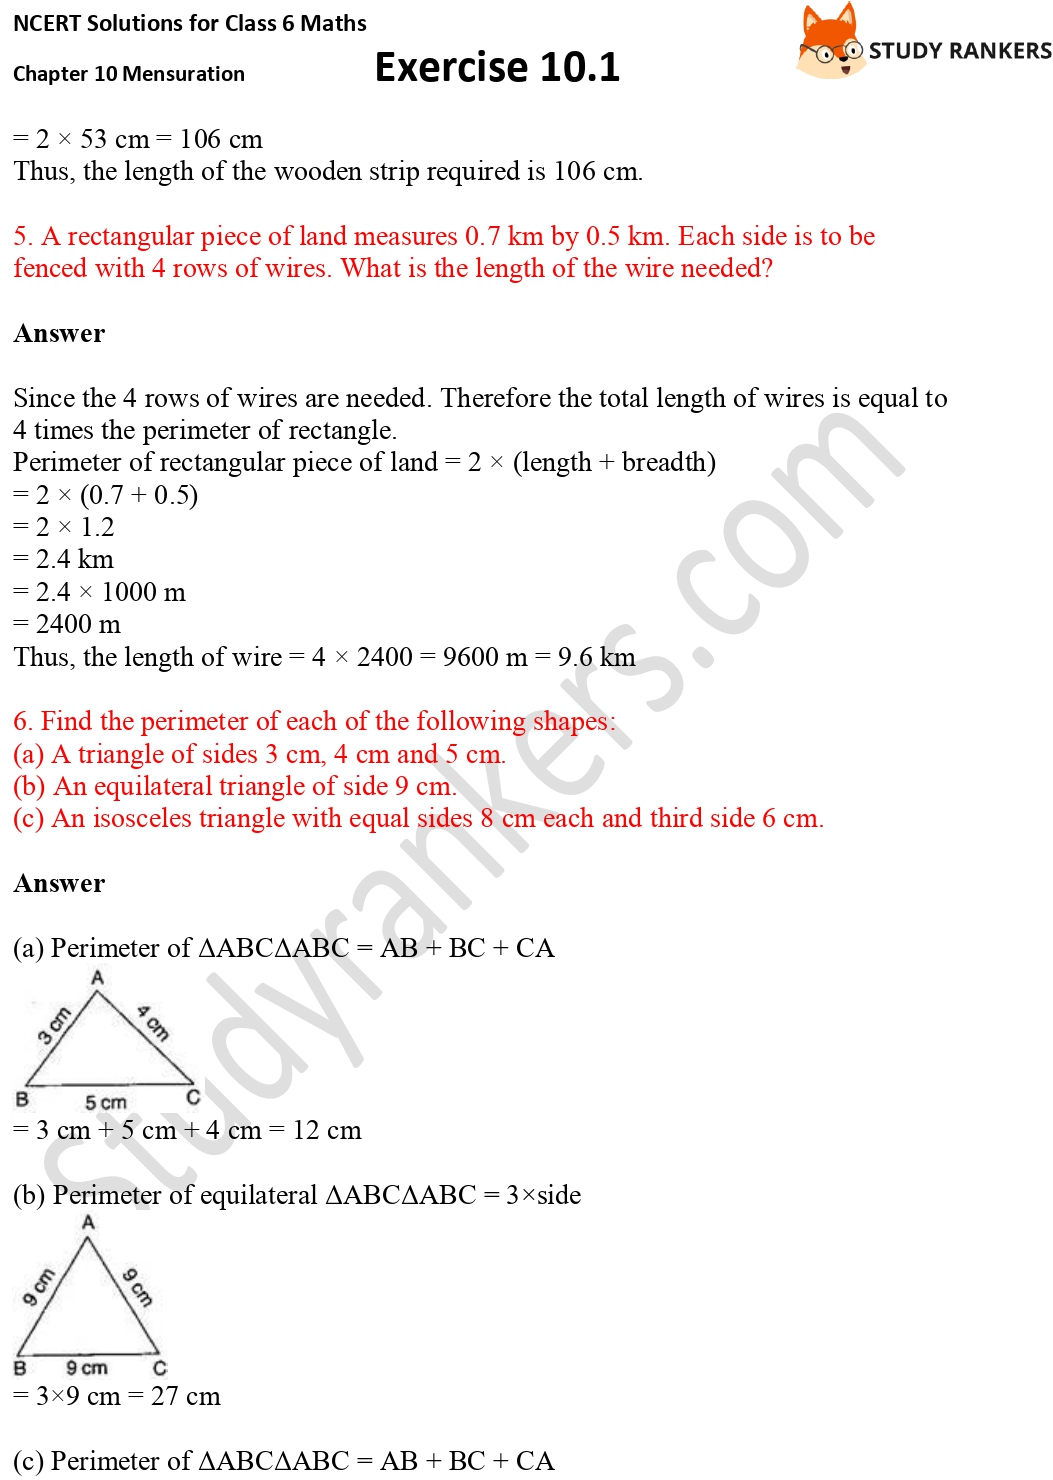 NCERT Solutions for Class 6 Maths Chapter 10 Mensuration Exercise 10.1 Part 3